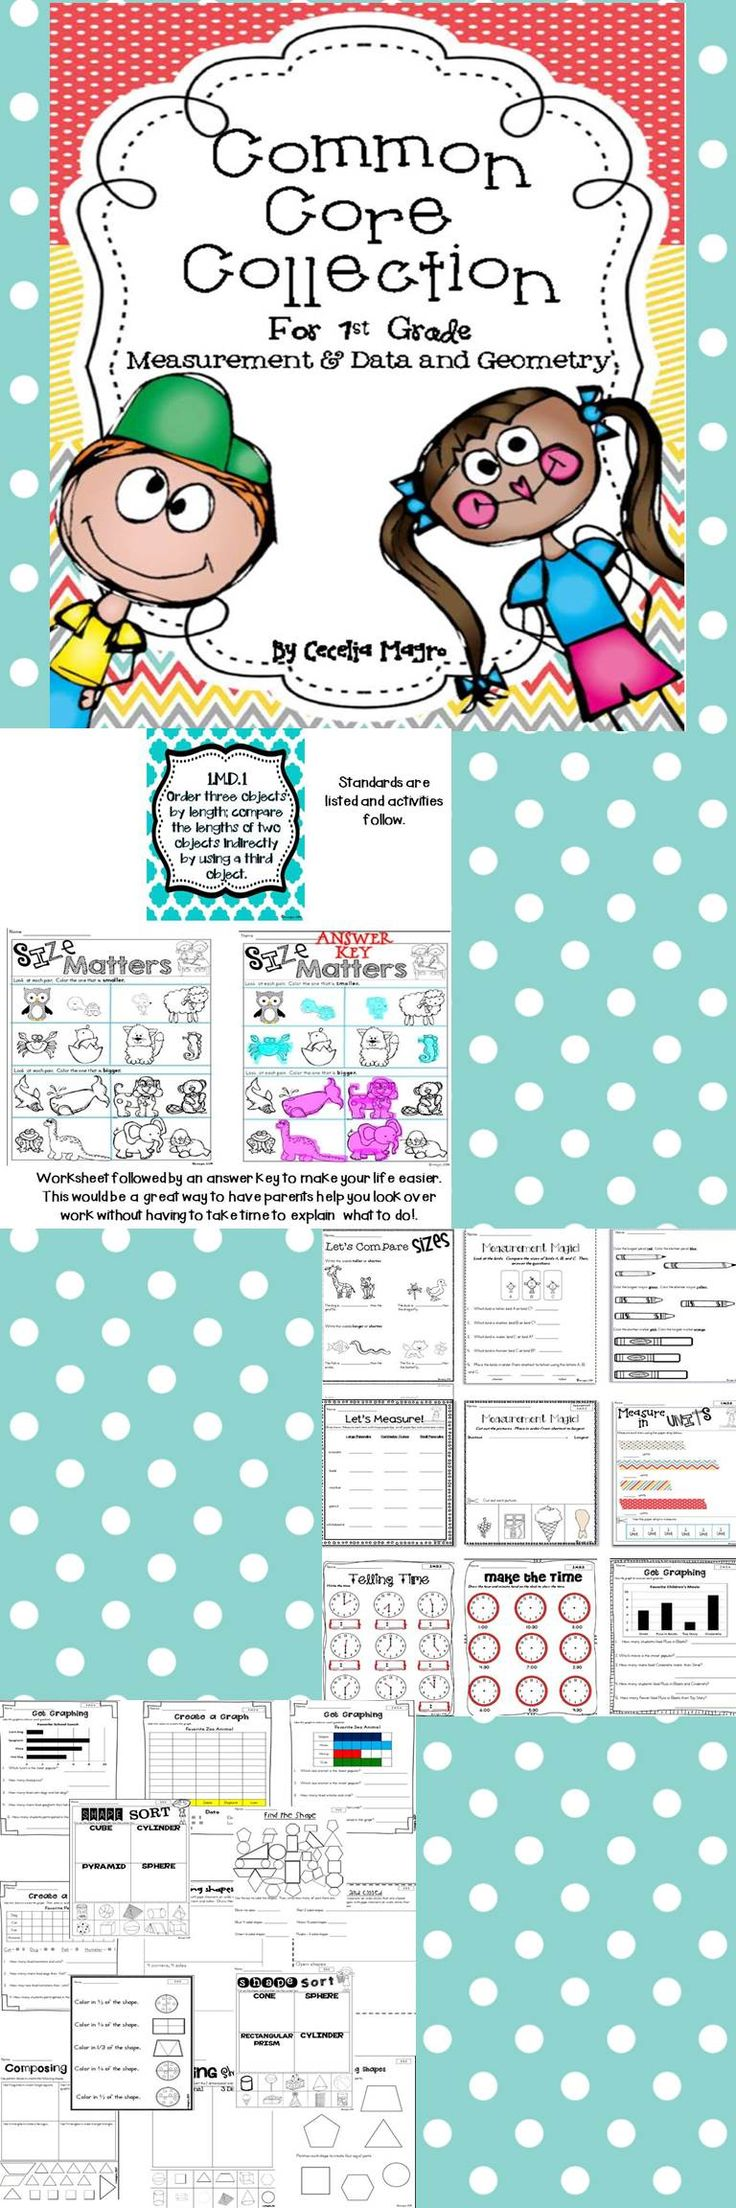 215 best commom core math images on Pinterest | 4th grade math ...